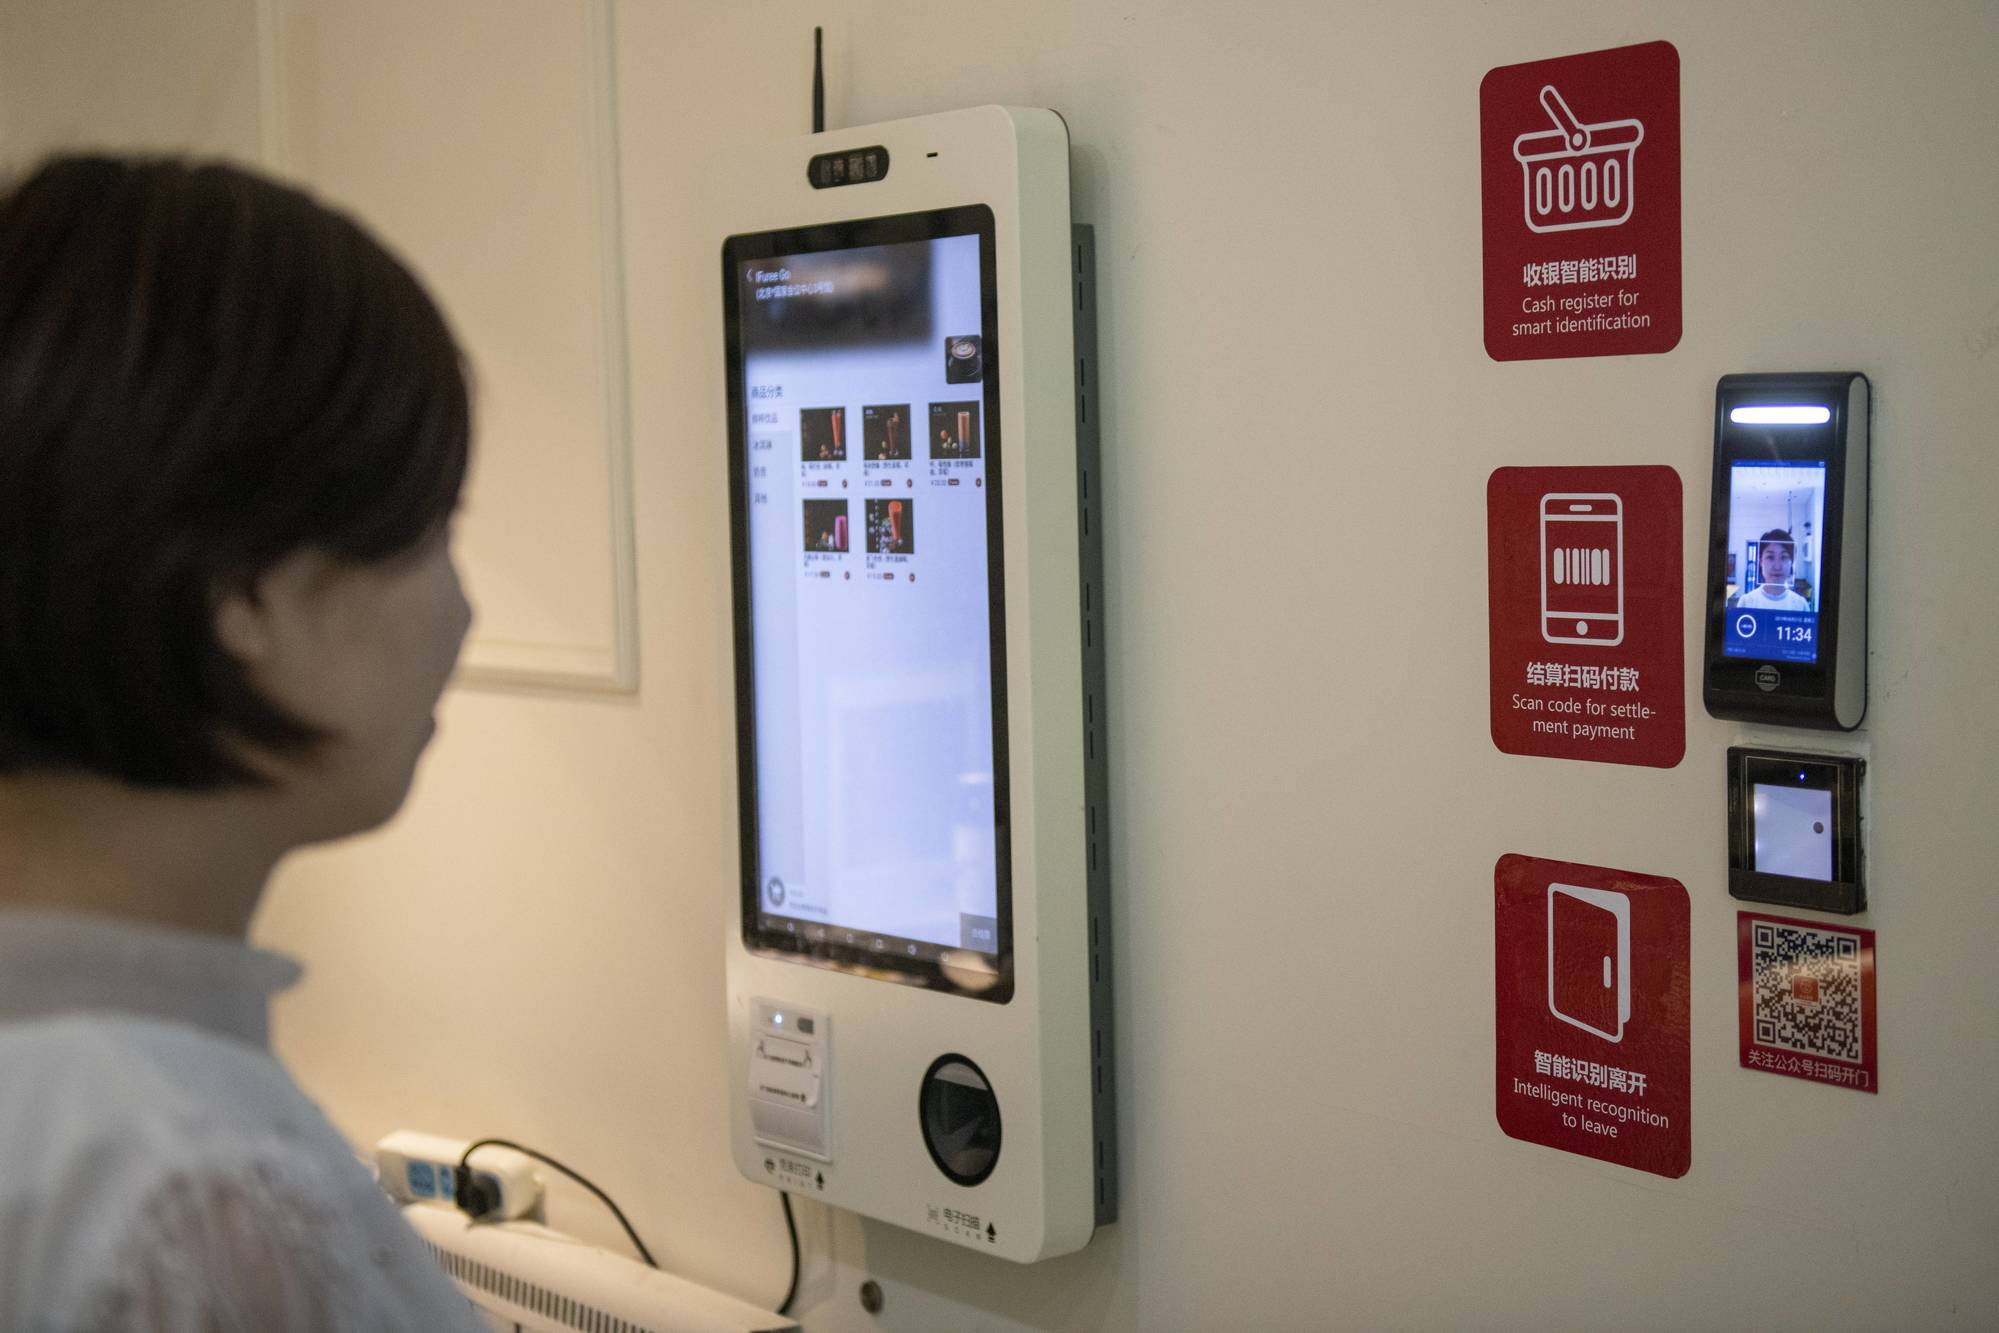 In this picture taken on August 21, 2019 a woman uses a facial recognition device installed at an IFuree Go self-service supermarket in Tianjin. - China's mobile payment infrastructure is already among the most advanced in the world, but facial payment technology is bidding to make QR phone codes old-fashioned. The newest payment systems being rolled out across the country only require a person's face to make purchases -- no mobile, no cash, no wallet. (Photo by Nicolas ASFOURI / AFP) / To go with AFP story China-technology-retail, FEATURE by Helen Roxburgh